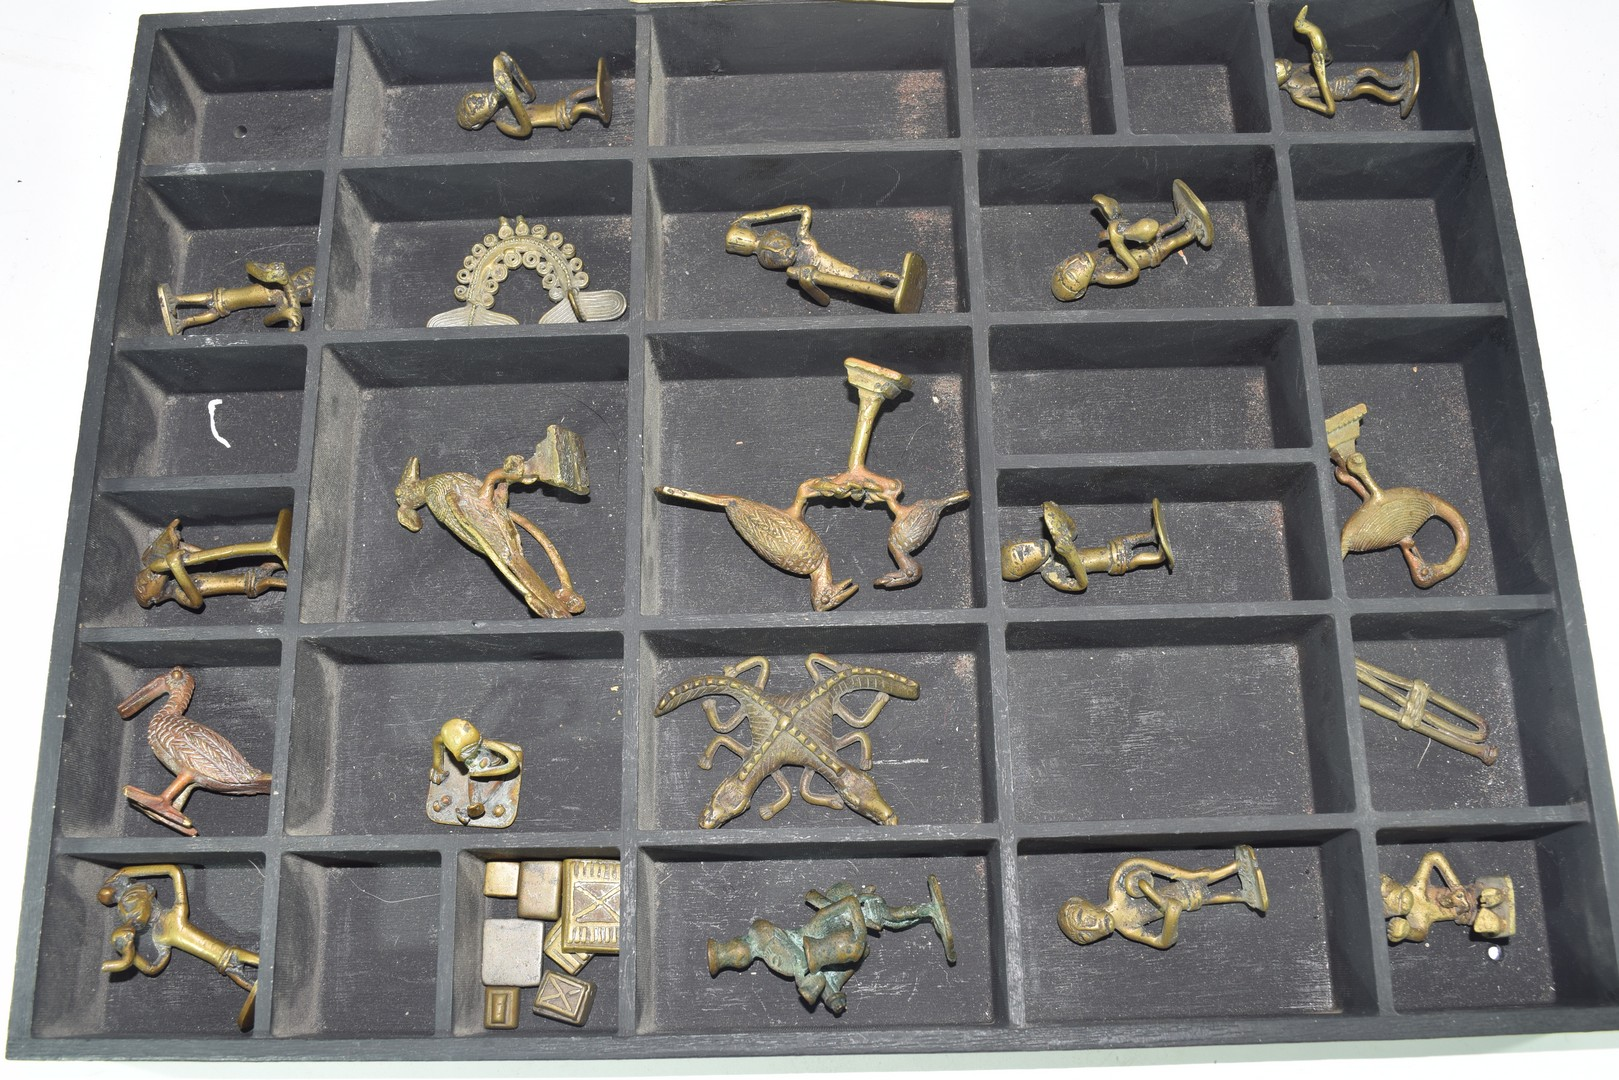 Collection of Ghanaian Ashanti figurative gold weights - Image 2 of 3